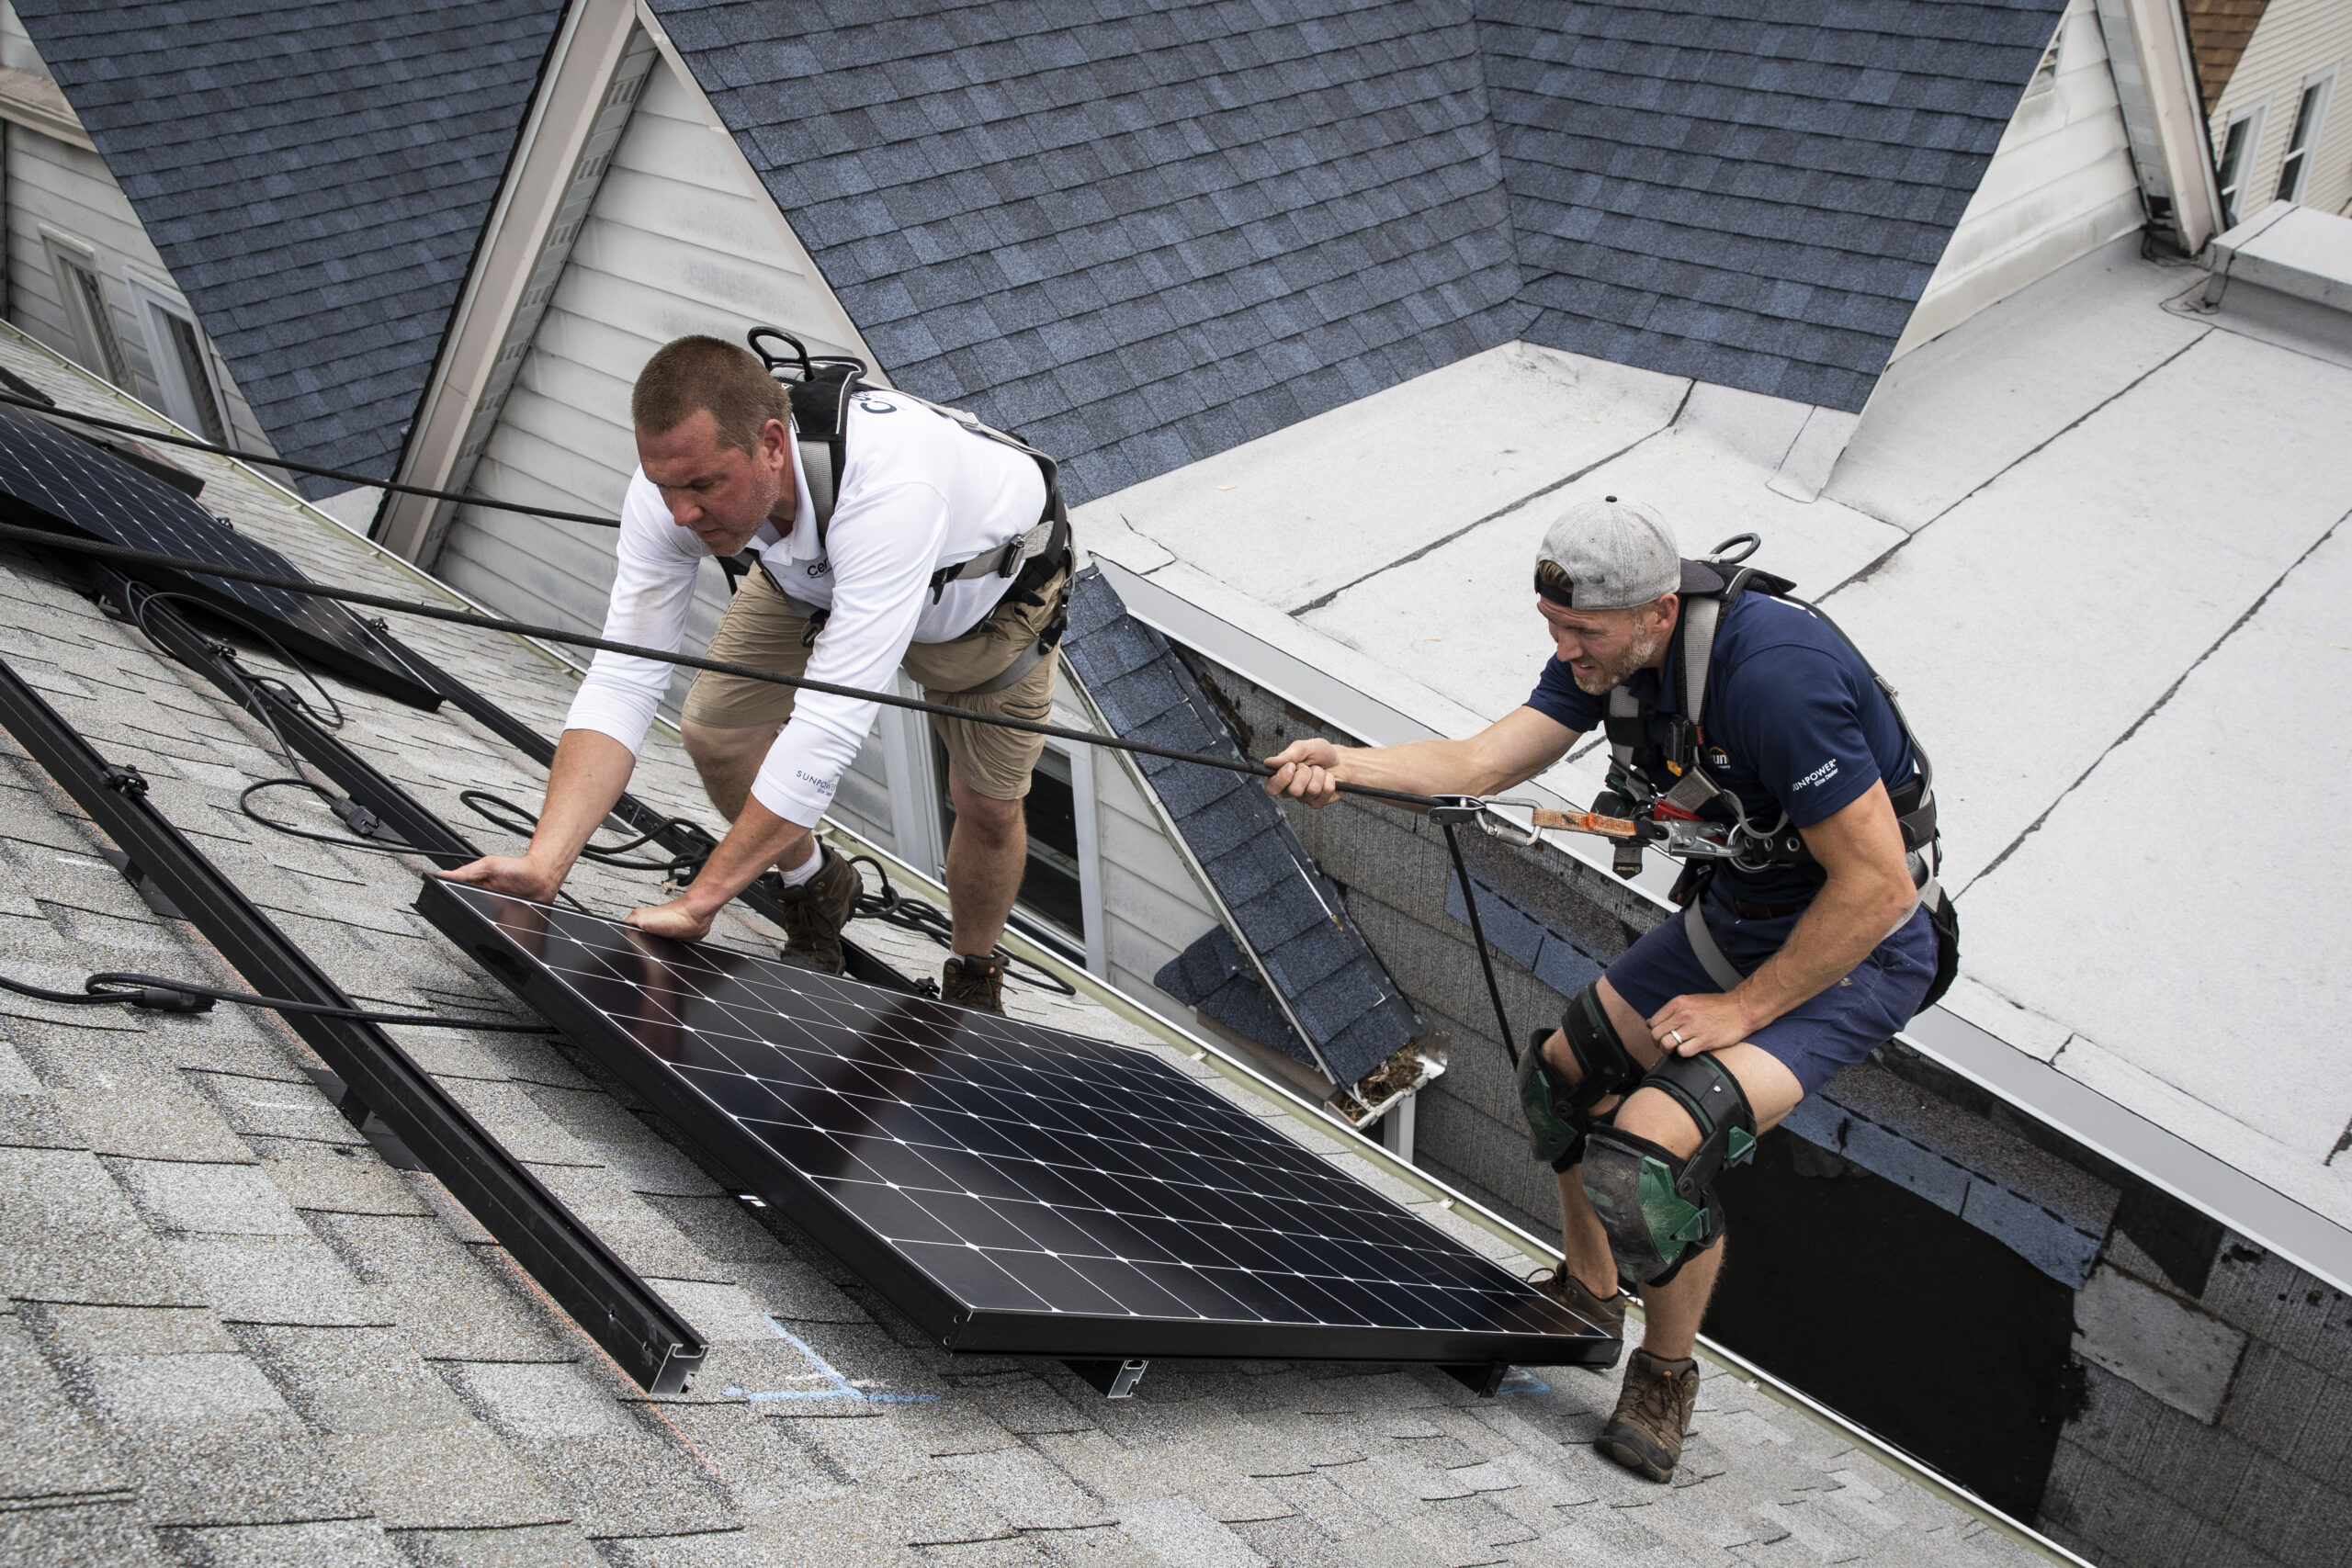 Pete Southerton (left) and Tom Bradshaw, of solar energy contractor Certasun, install solar panels on a Northwest Side home, Monday afternoon, May 17, 2021. Credit: Ashlee Rezin Garcia/Sun-Times